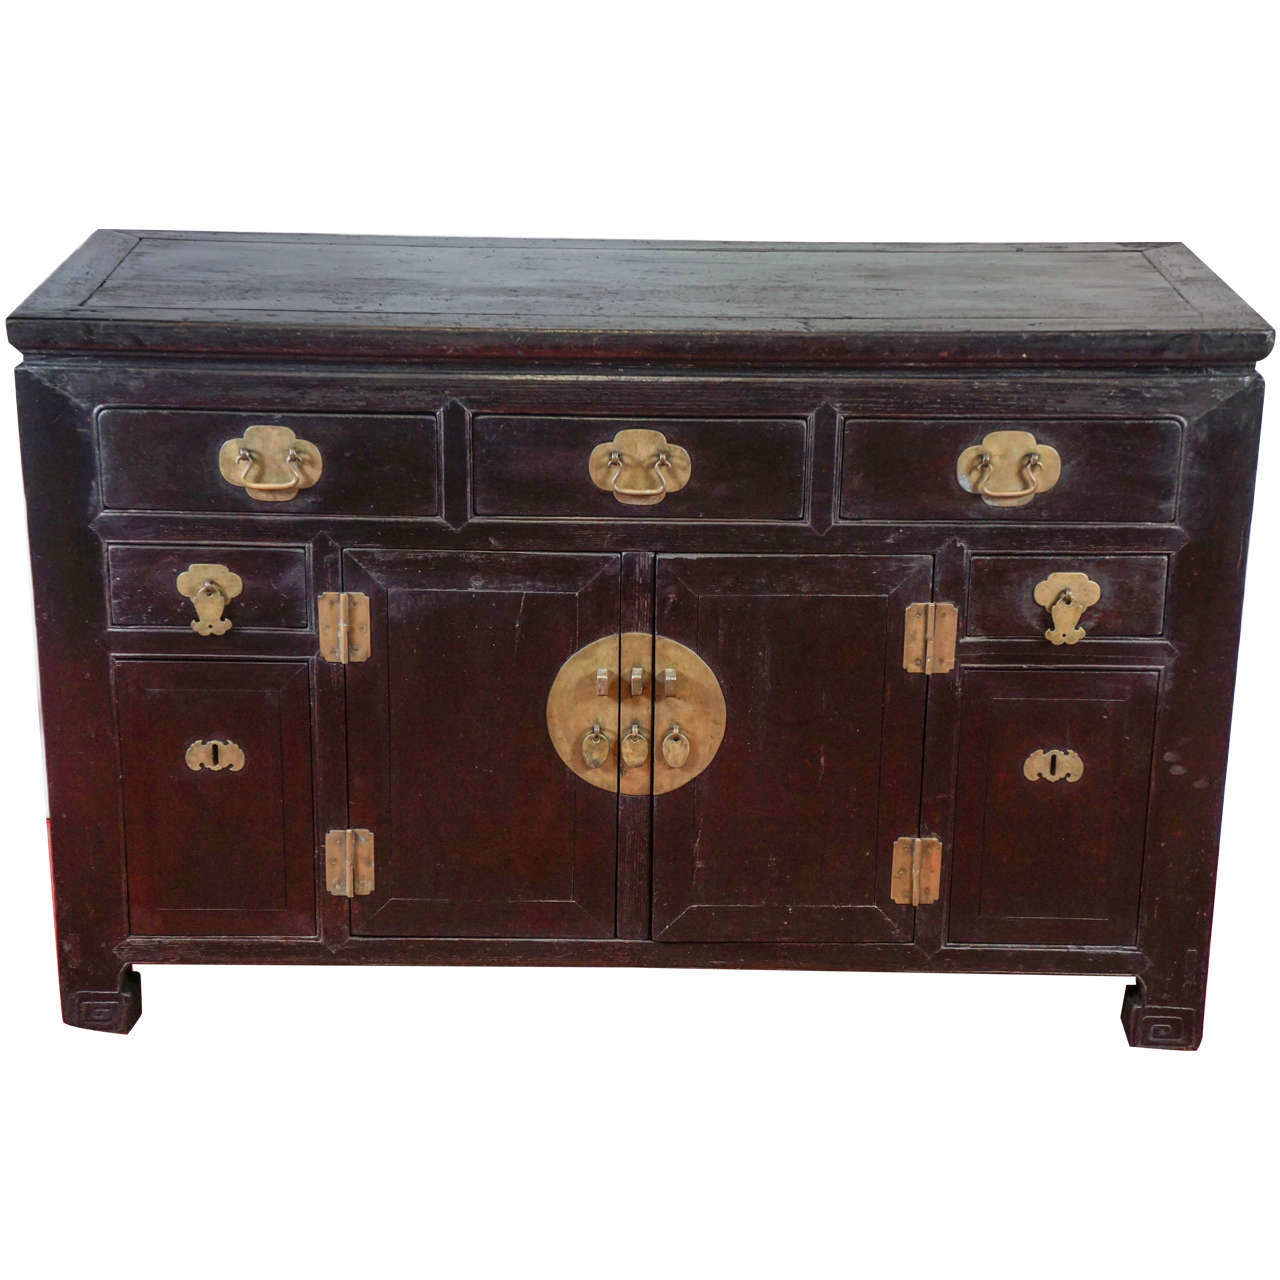 antique chinese black lacquered cabinet for sale at stdibs - antique chinese black lacquered cabinet